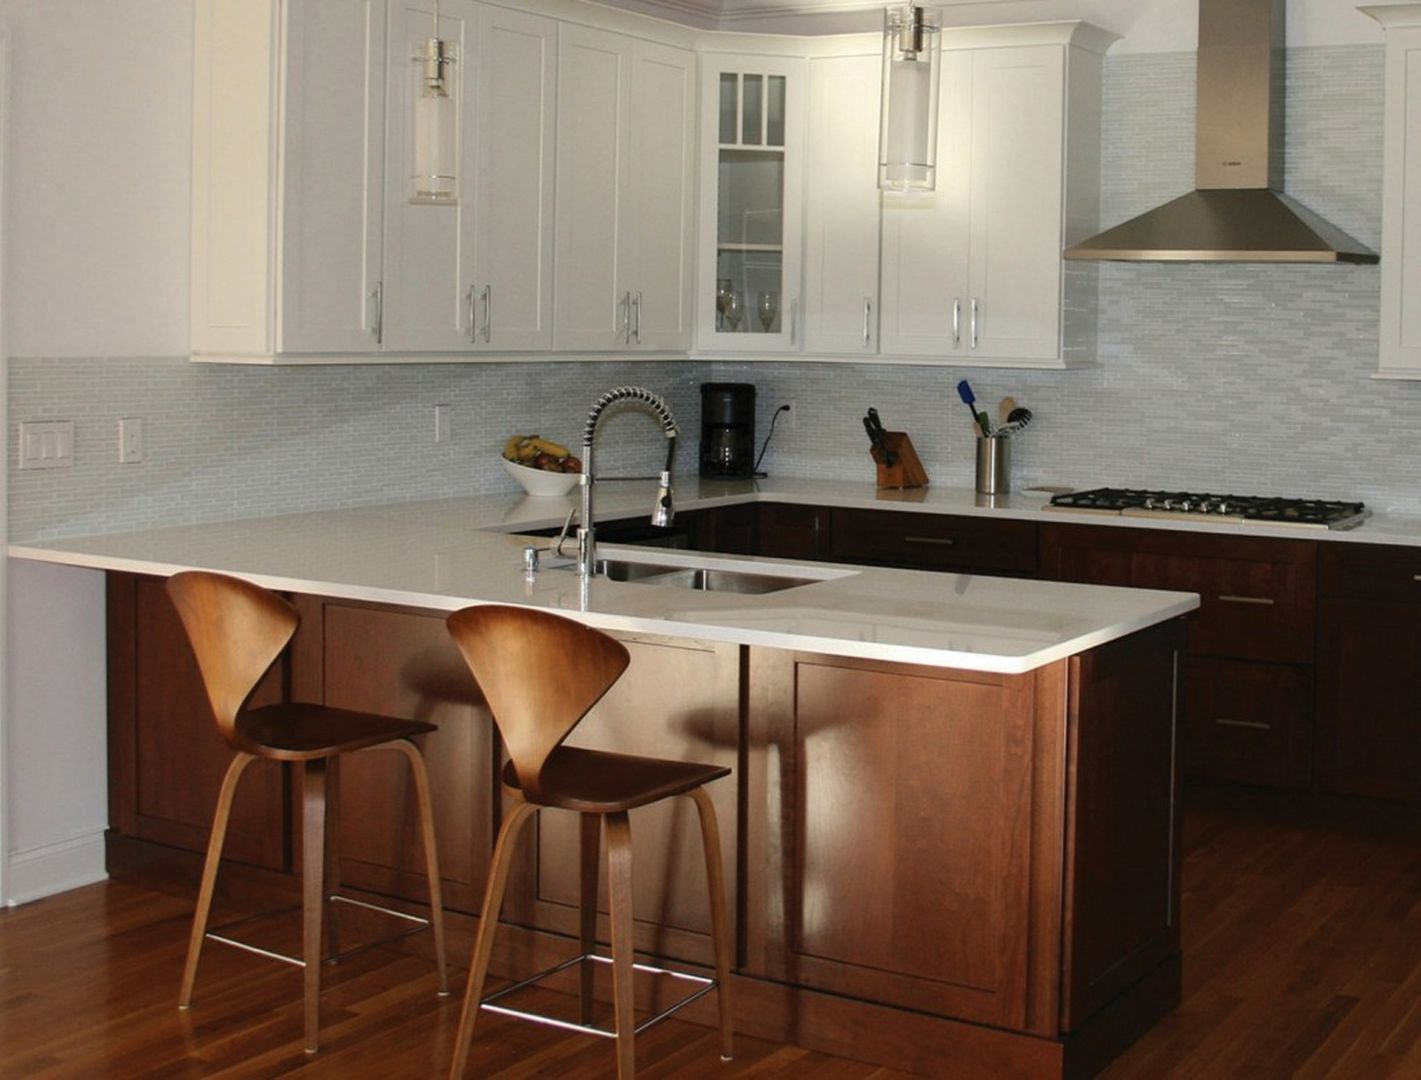 What Is A Kitchen Peninsula Nonagon Style Kitchen Peninsula Kitchen Design Small Kitchen Cabinet Design